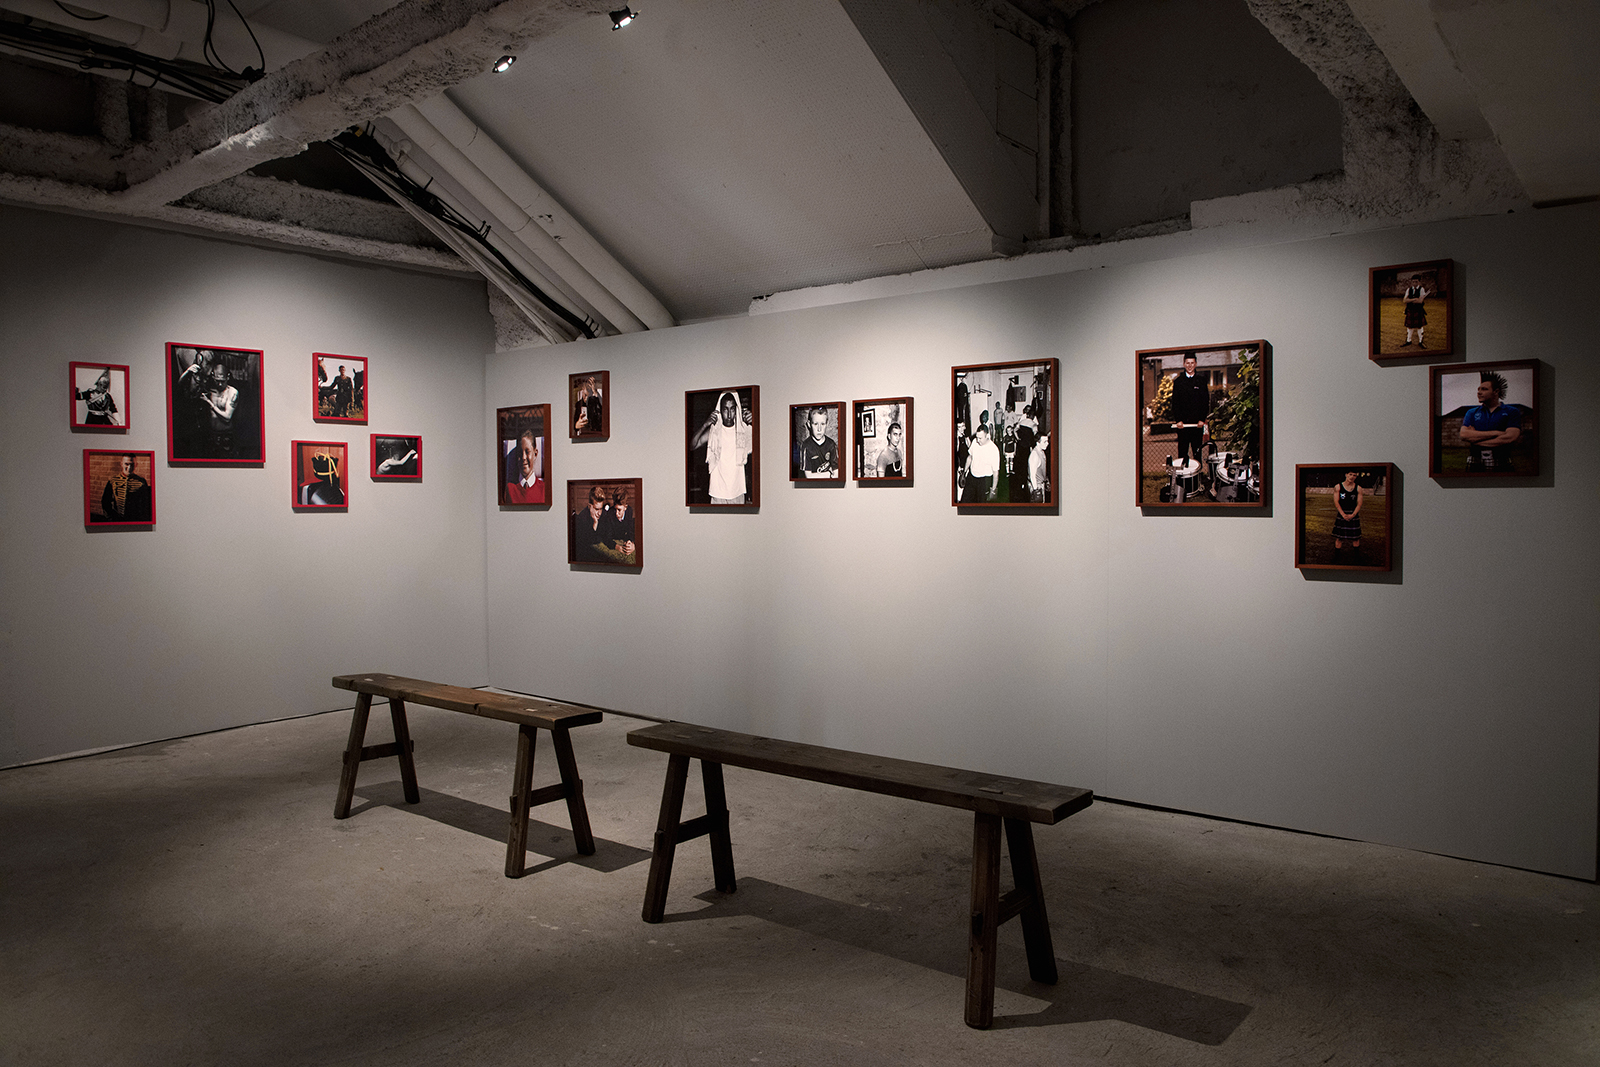 Burberrys-Here-We-Are-photography-exhibition-in-Hong-Kong_004.jpg